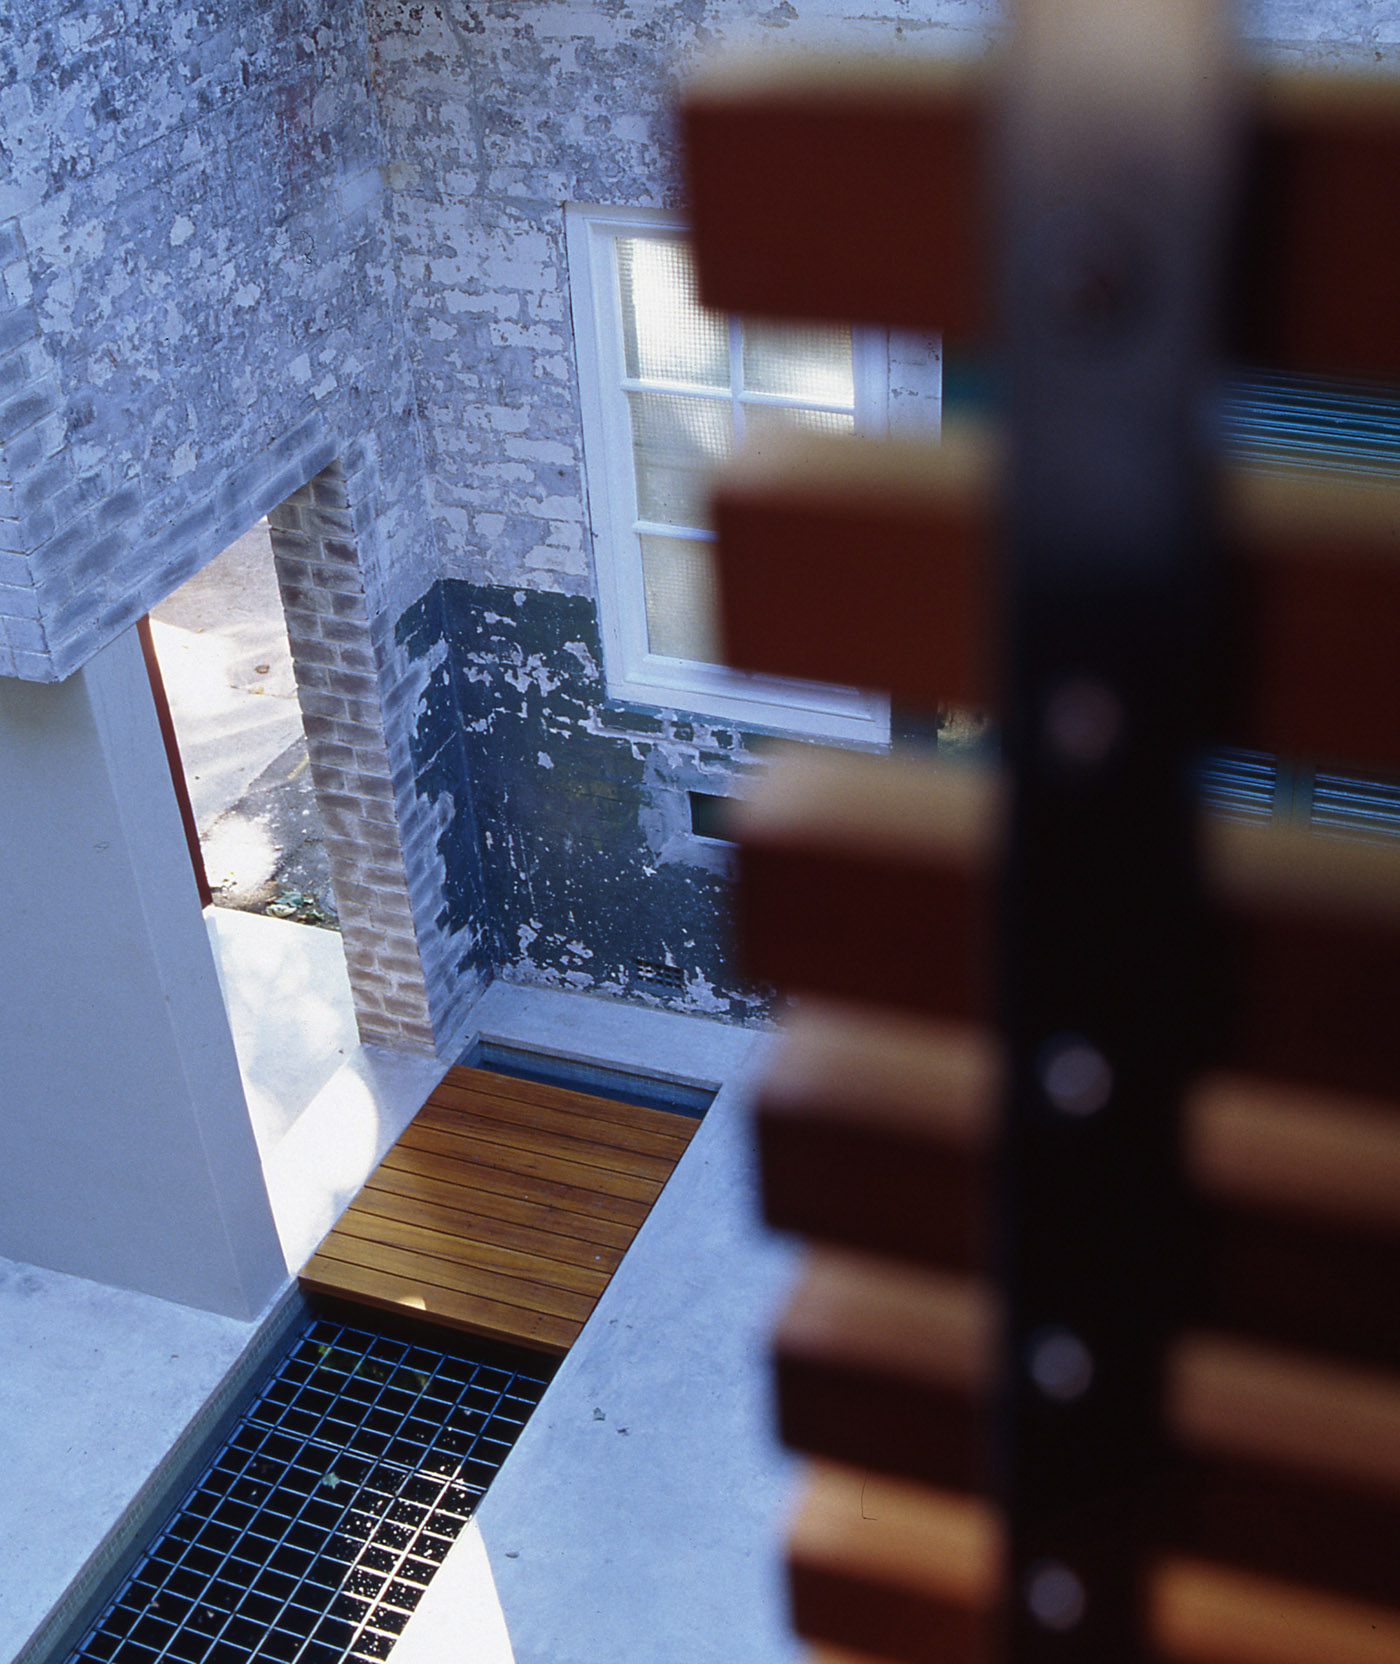 Substation House by award winning residential architecture firm Sam Crawford Architects. View from upstairs to the front brickwork entrance